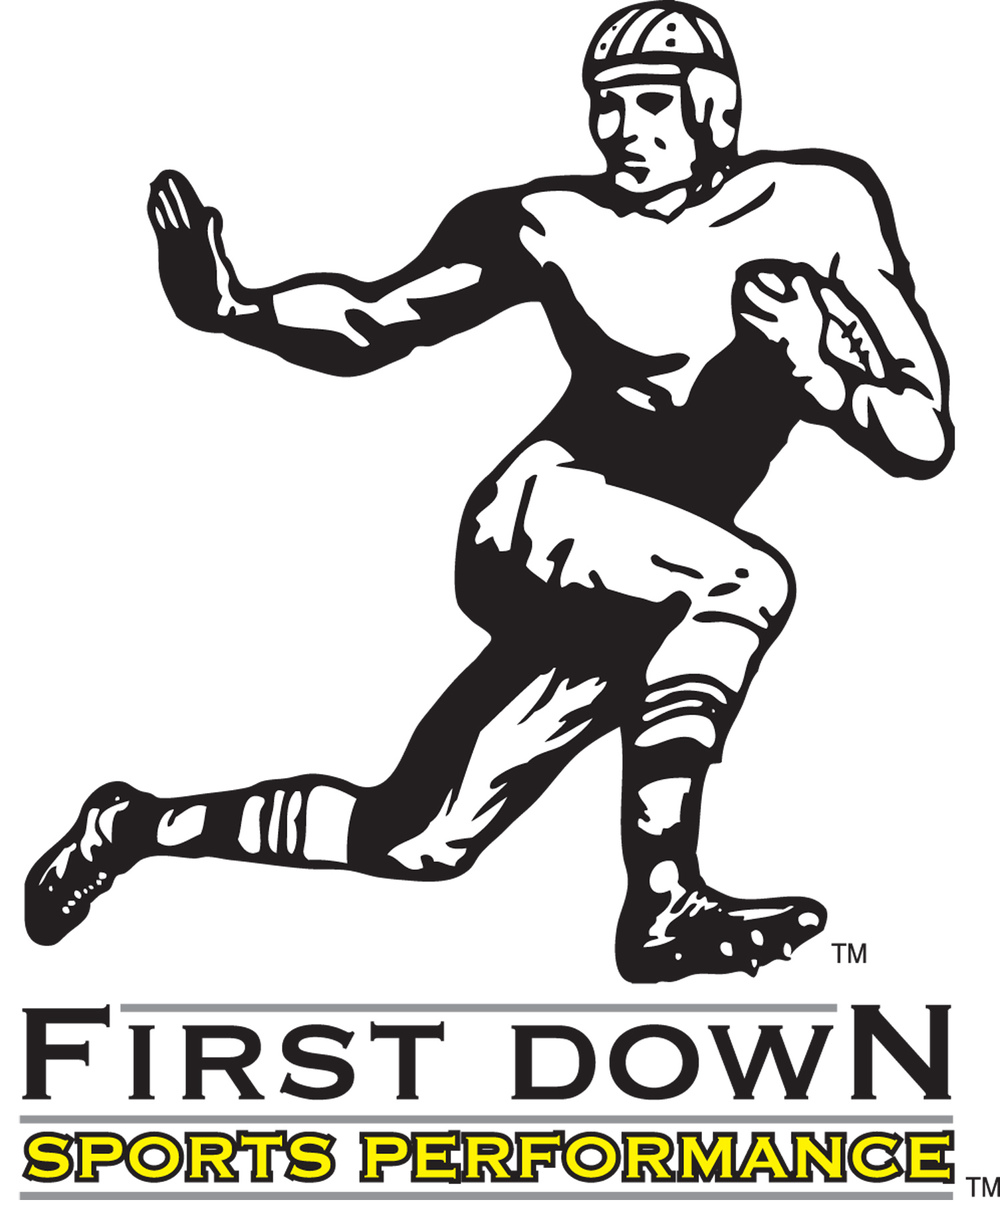 First Down Sports Performance fianl.jpg